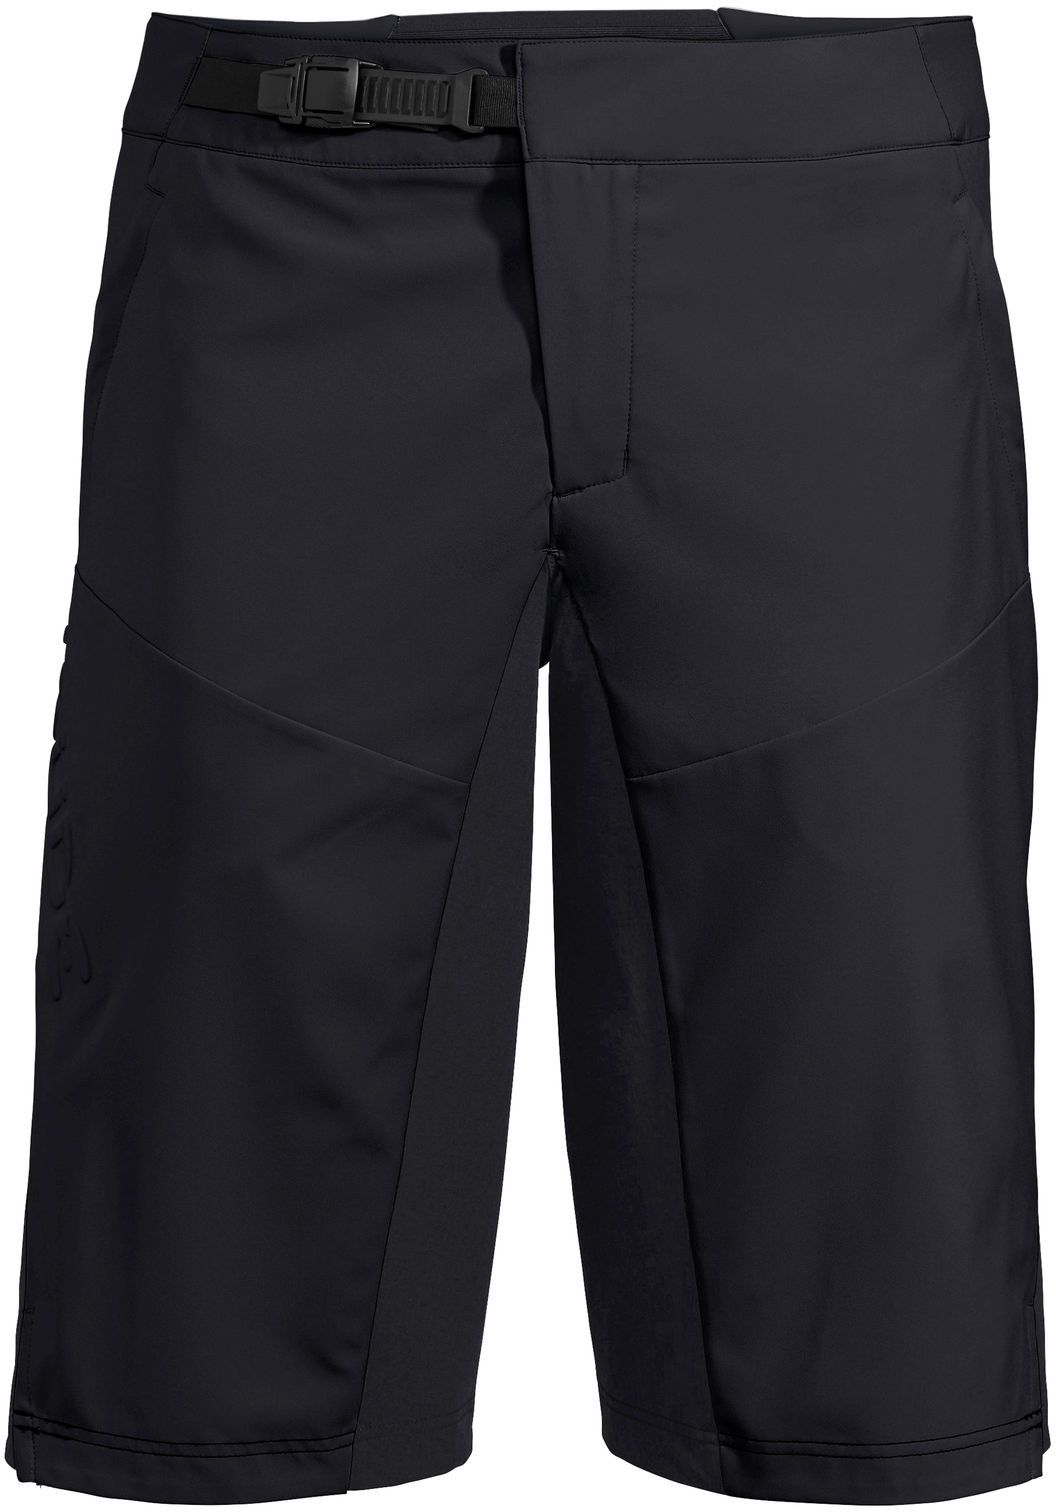 Vaude Men's Bracket Shorts - black XL